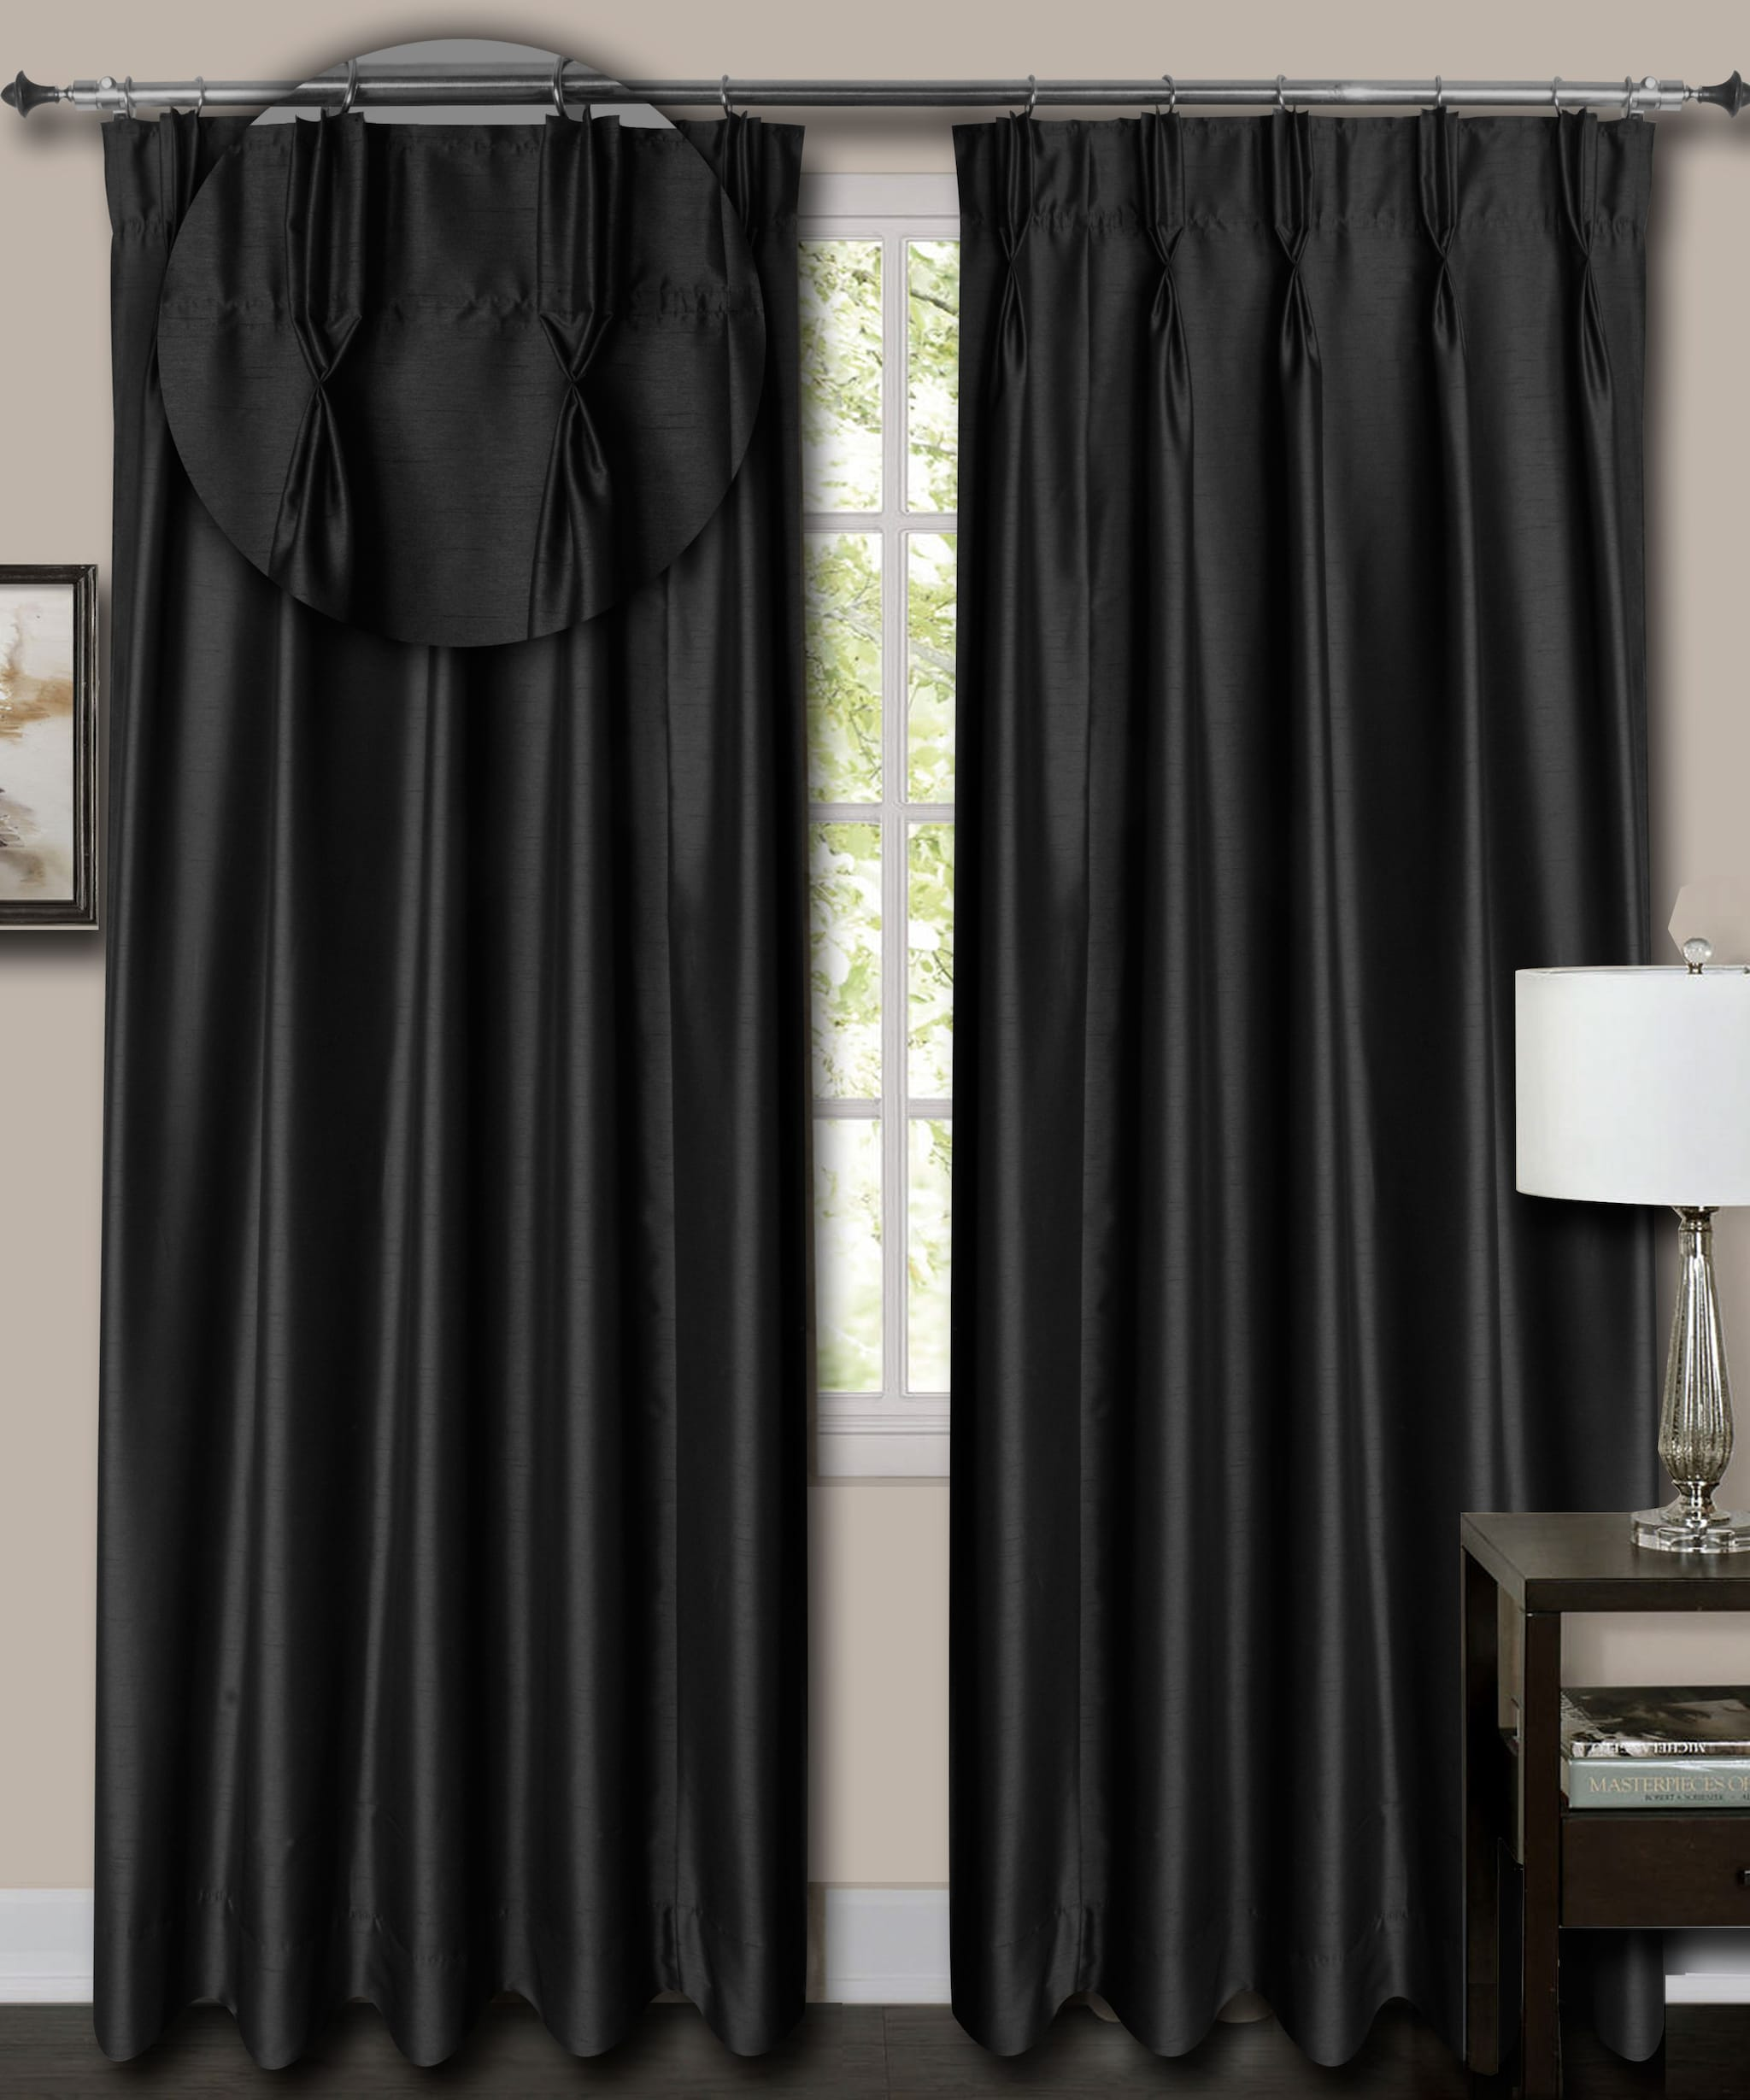 "French Pleat Top Black Faux Silk Dupioni Curtains. (78"" Wide,15 Feet Long,Without Lining)"